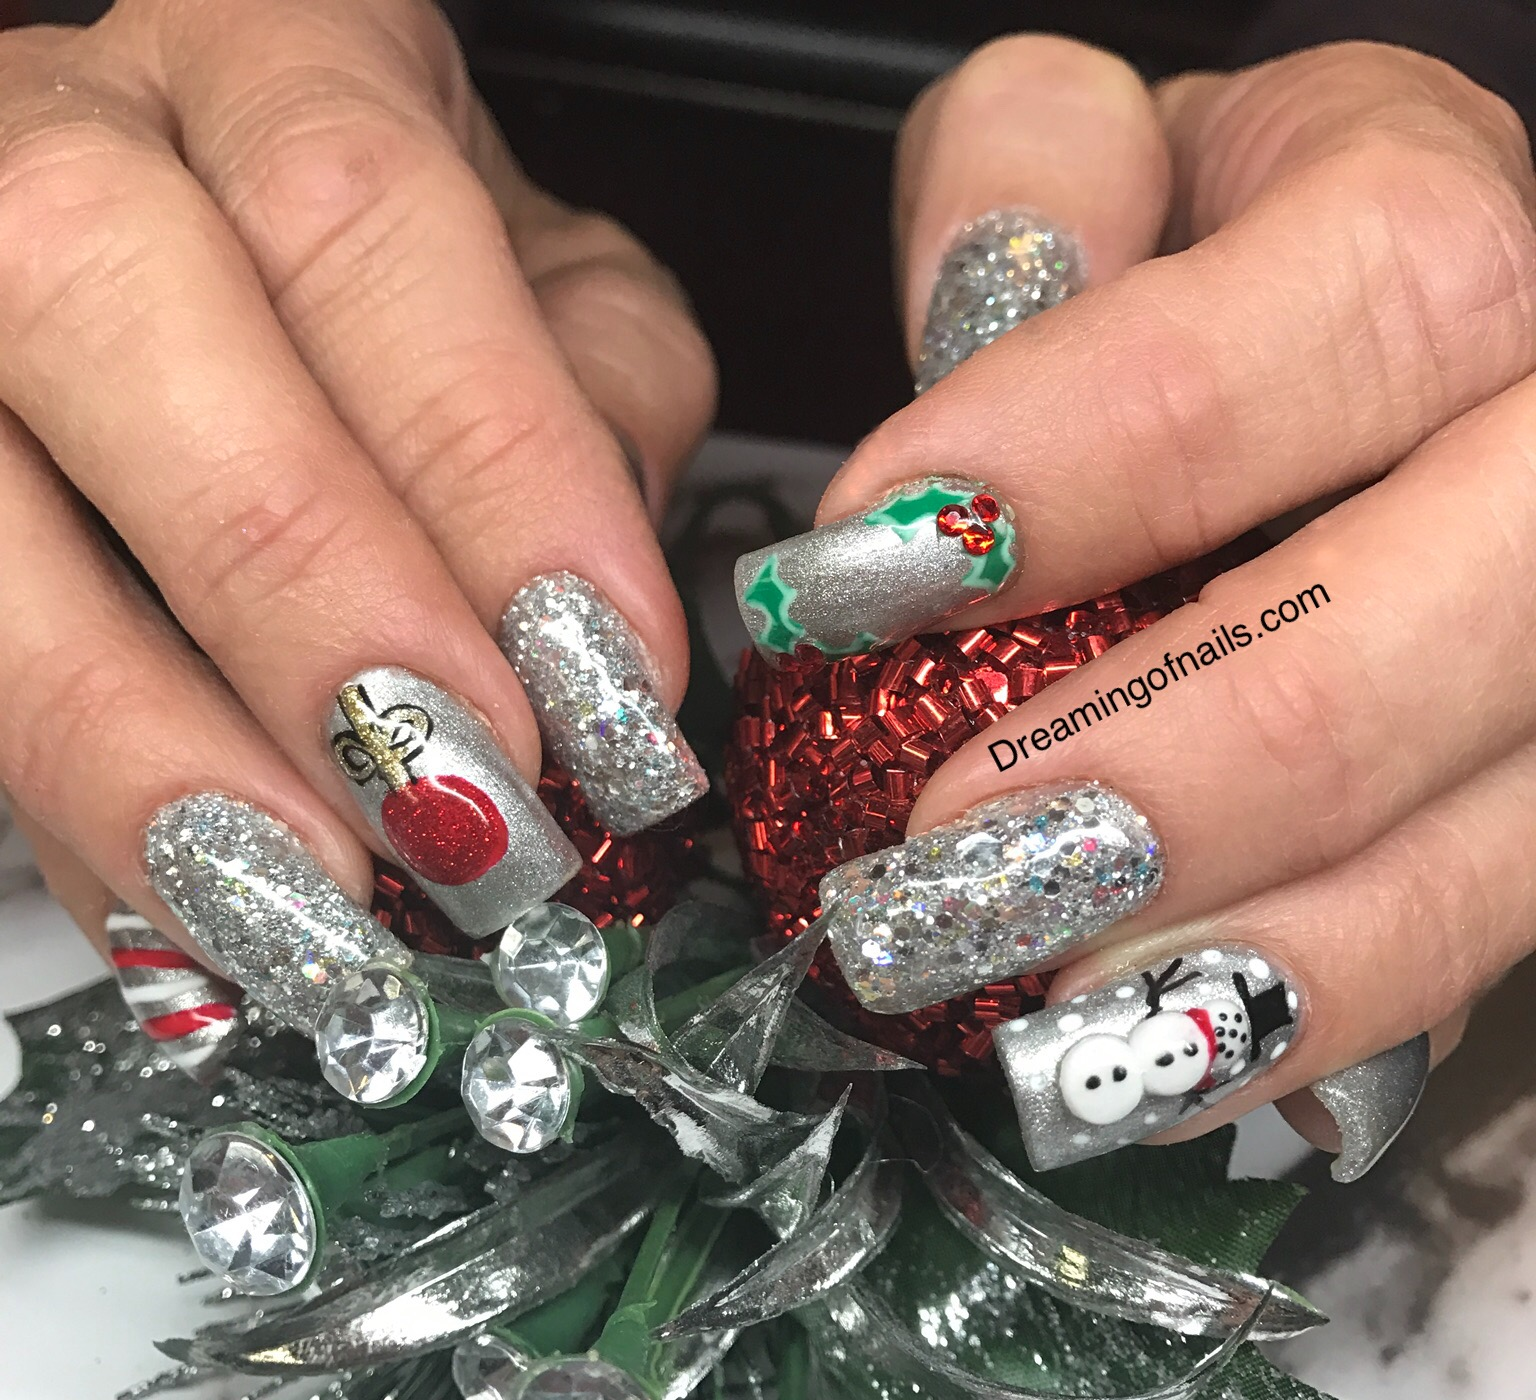 Christmas Nails With Glitter: 10 Must Have Christmas Nail Art Designs!